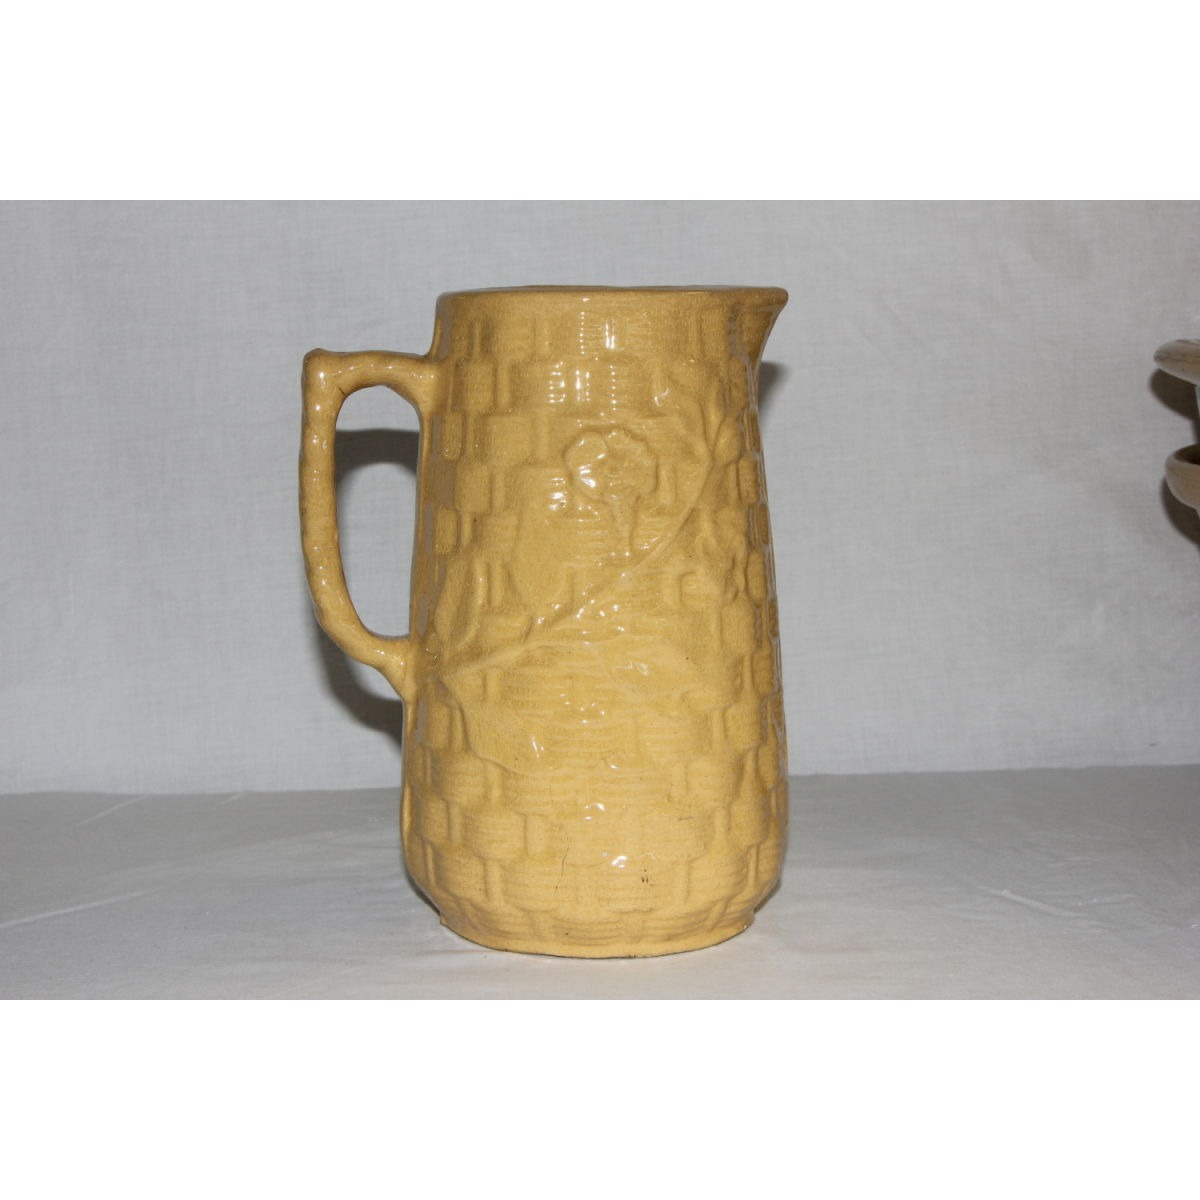 Simply Beautiful Yellowware Morning Glory Pitcher